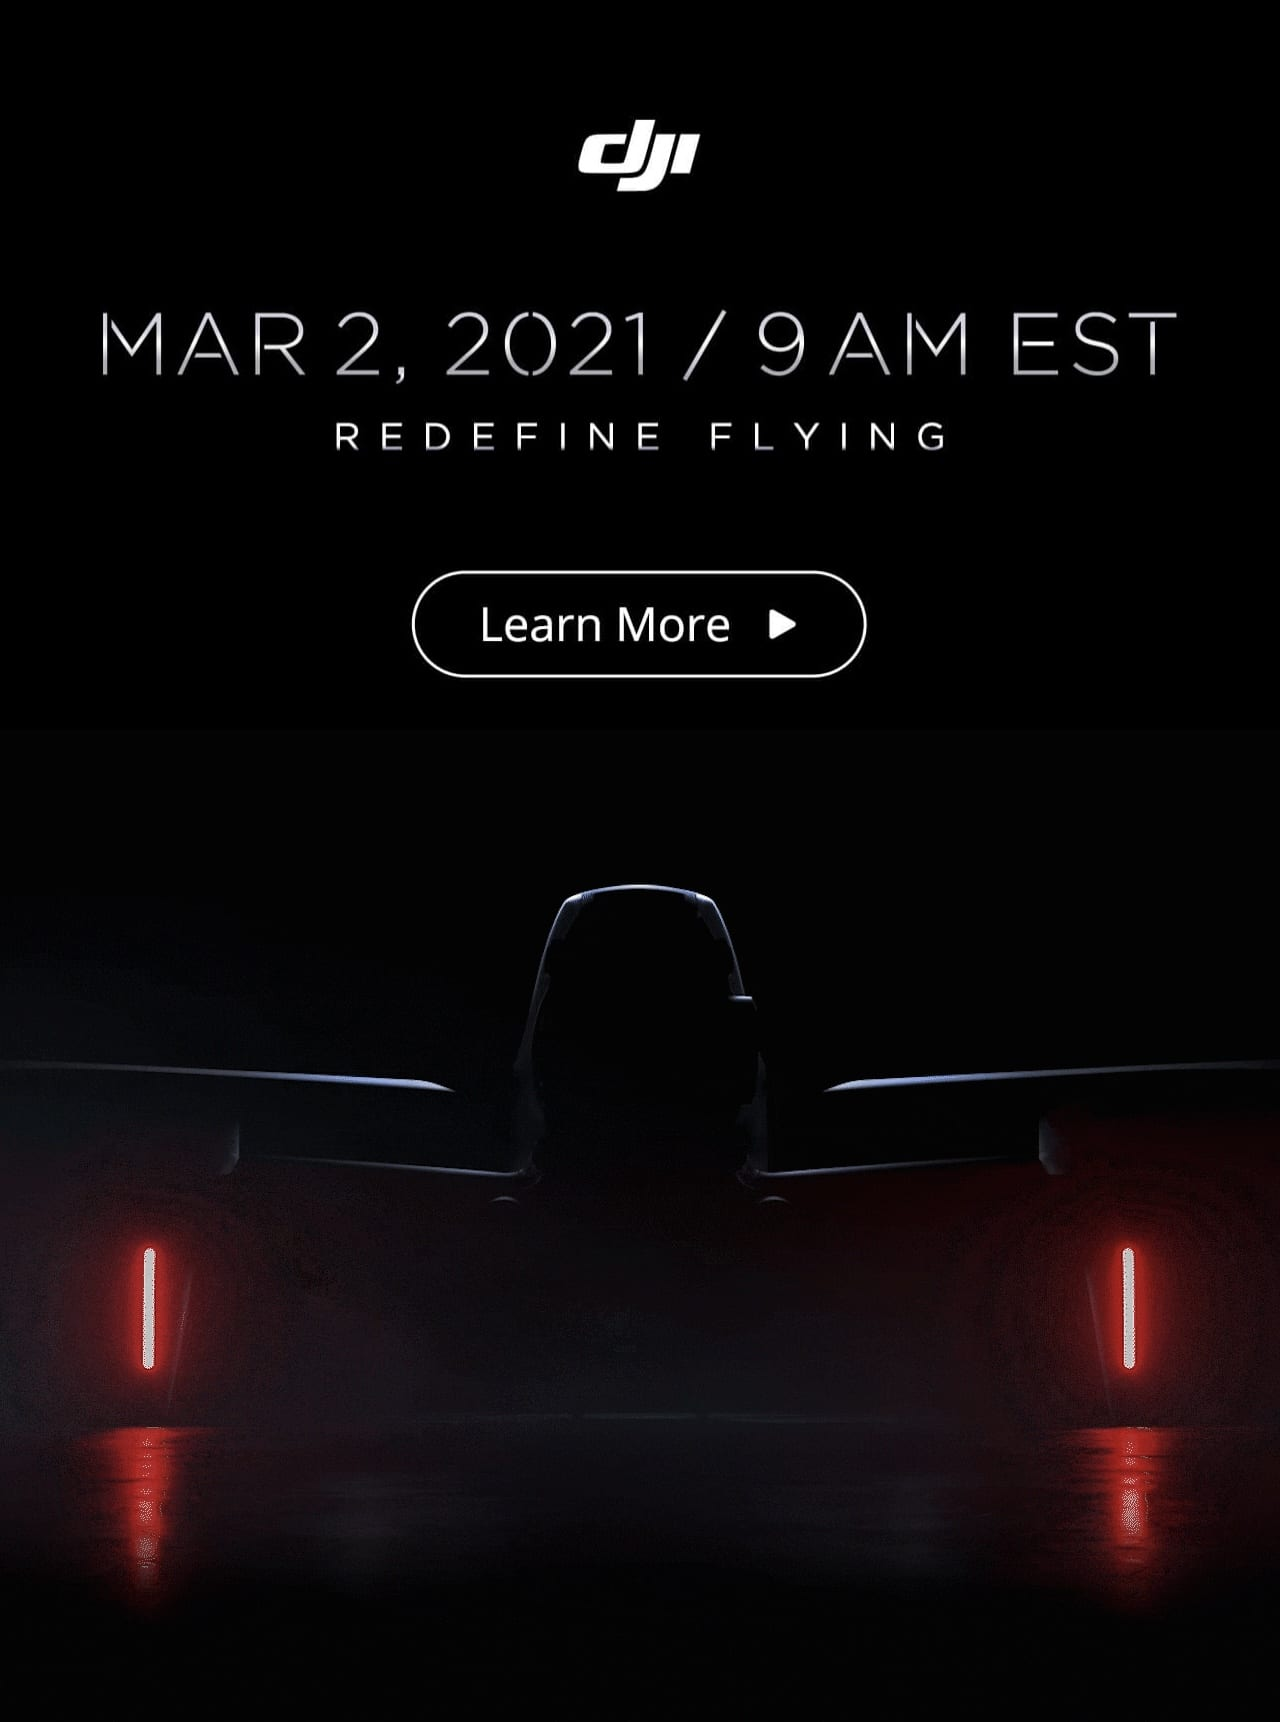 Official DJI FPV drone announcement follows series of leaks